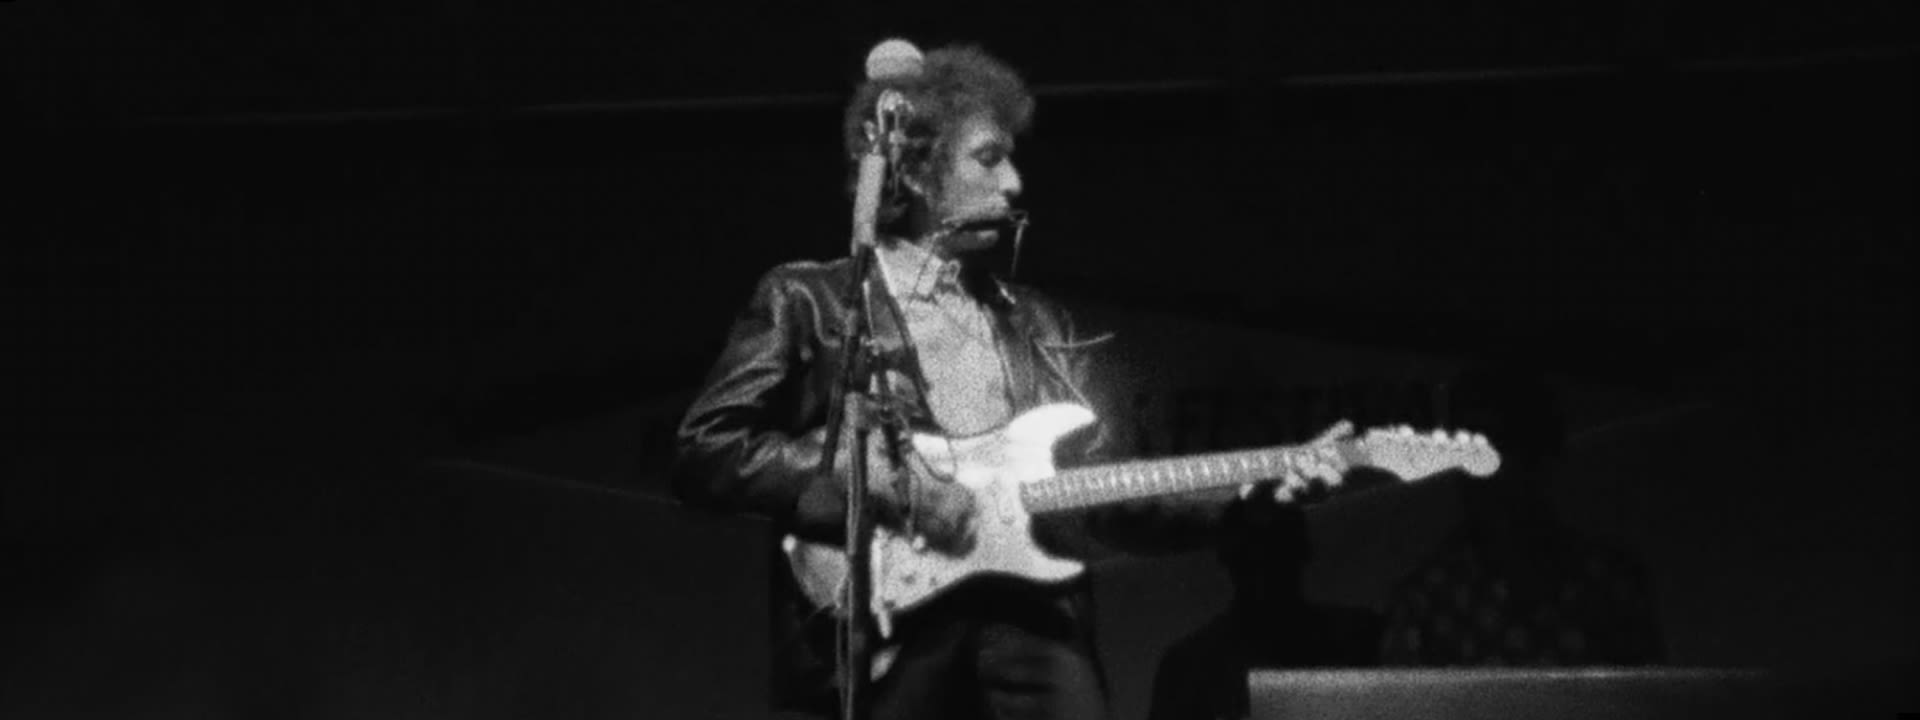 Dylan and His Reinvention at Newport, Song by Song